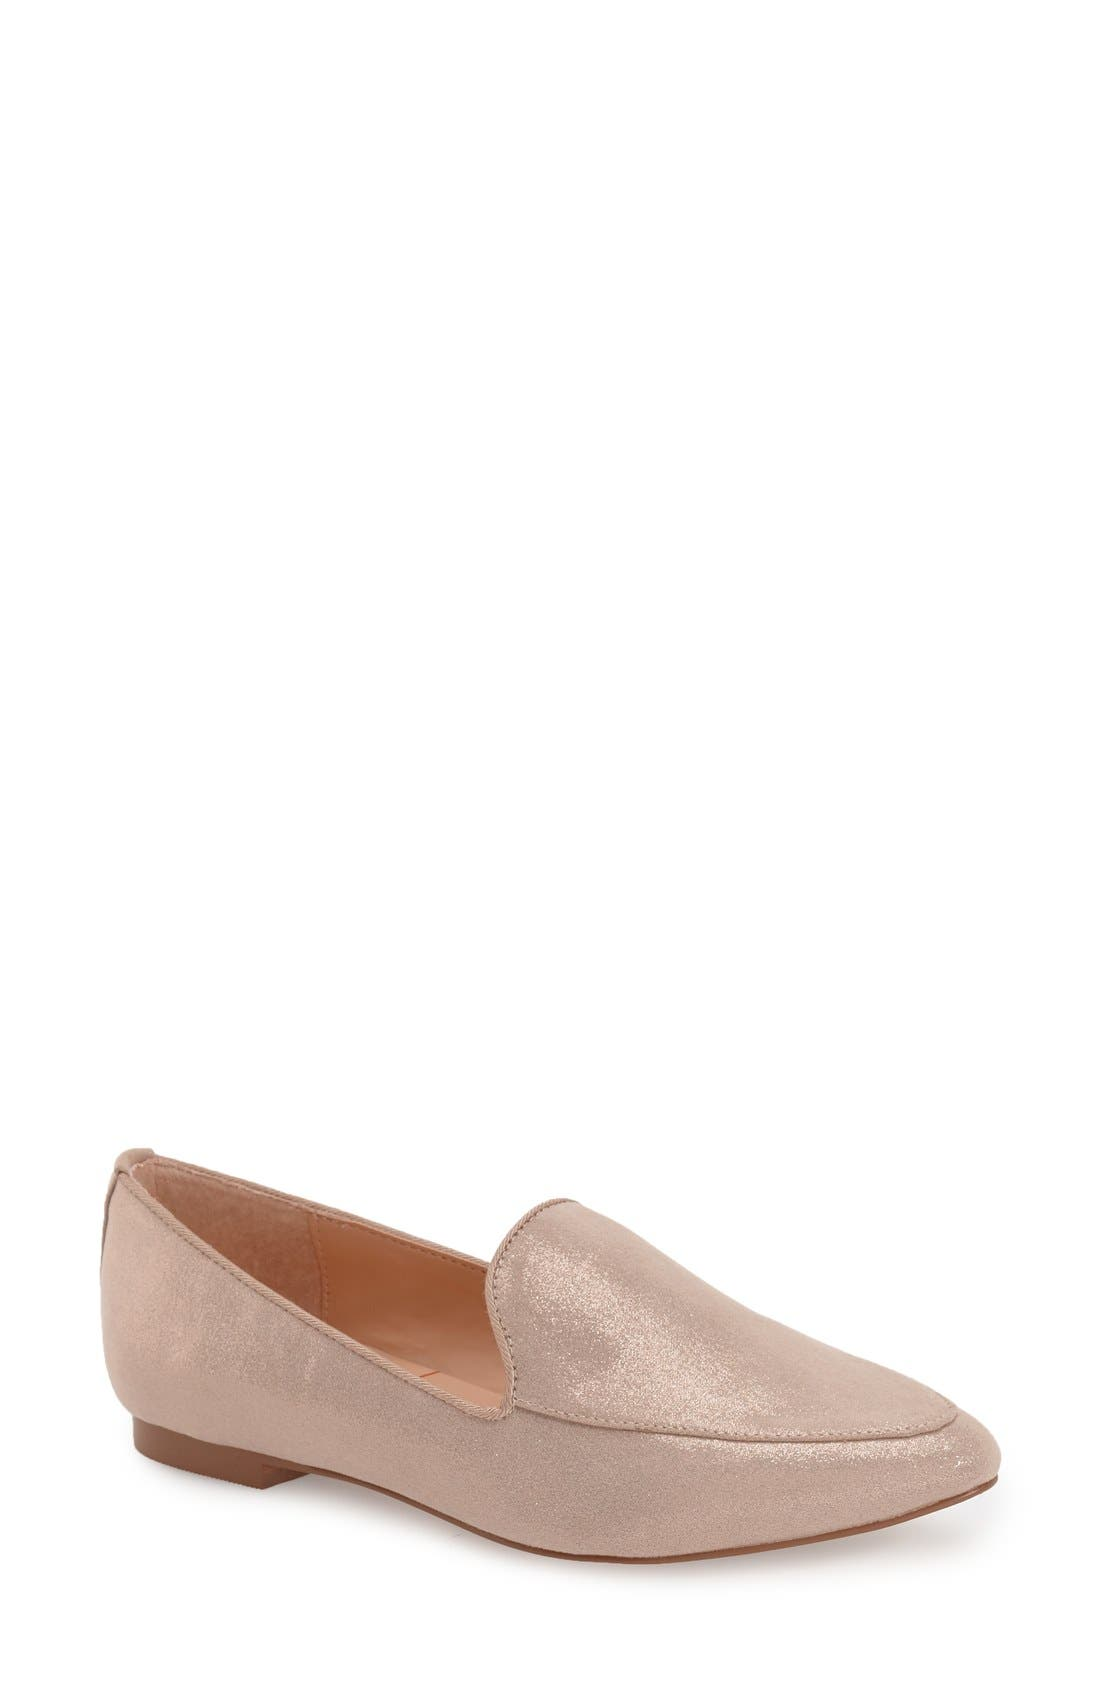 'Sean' Pointy Toe Loafer,                             Main thumbnail 1, color,                             Nude Metallic